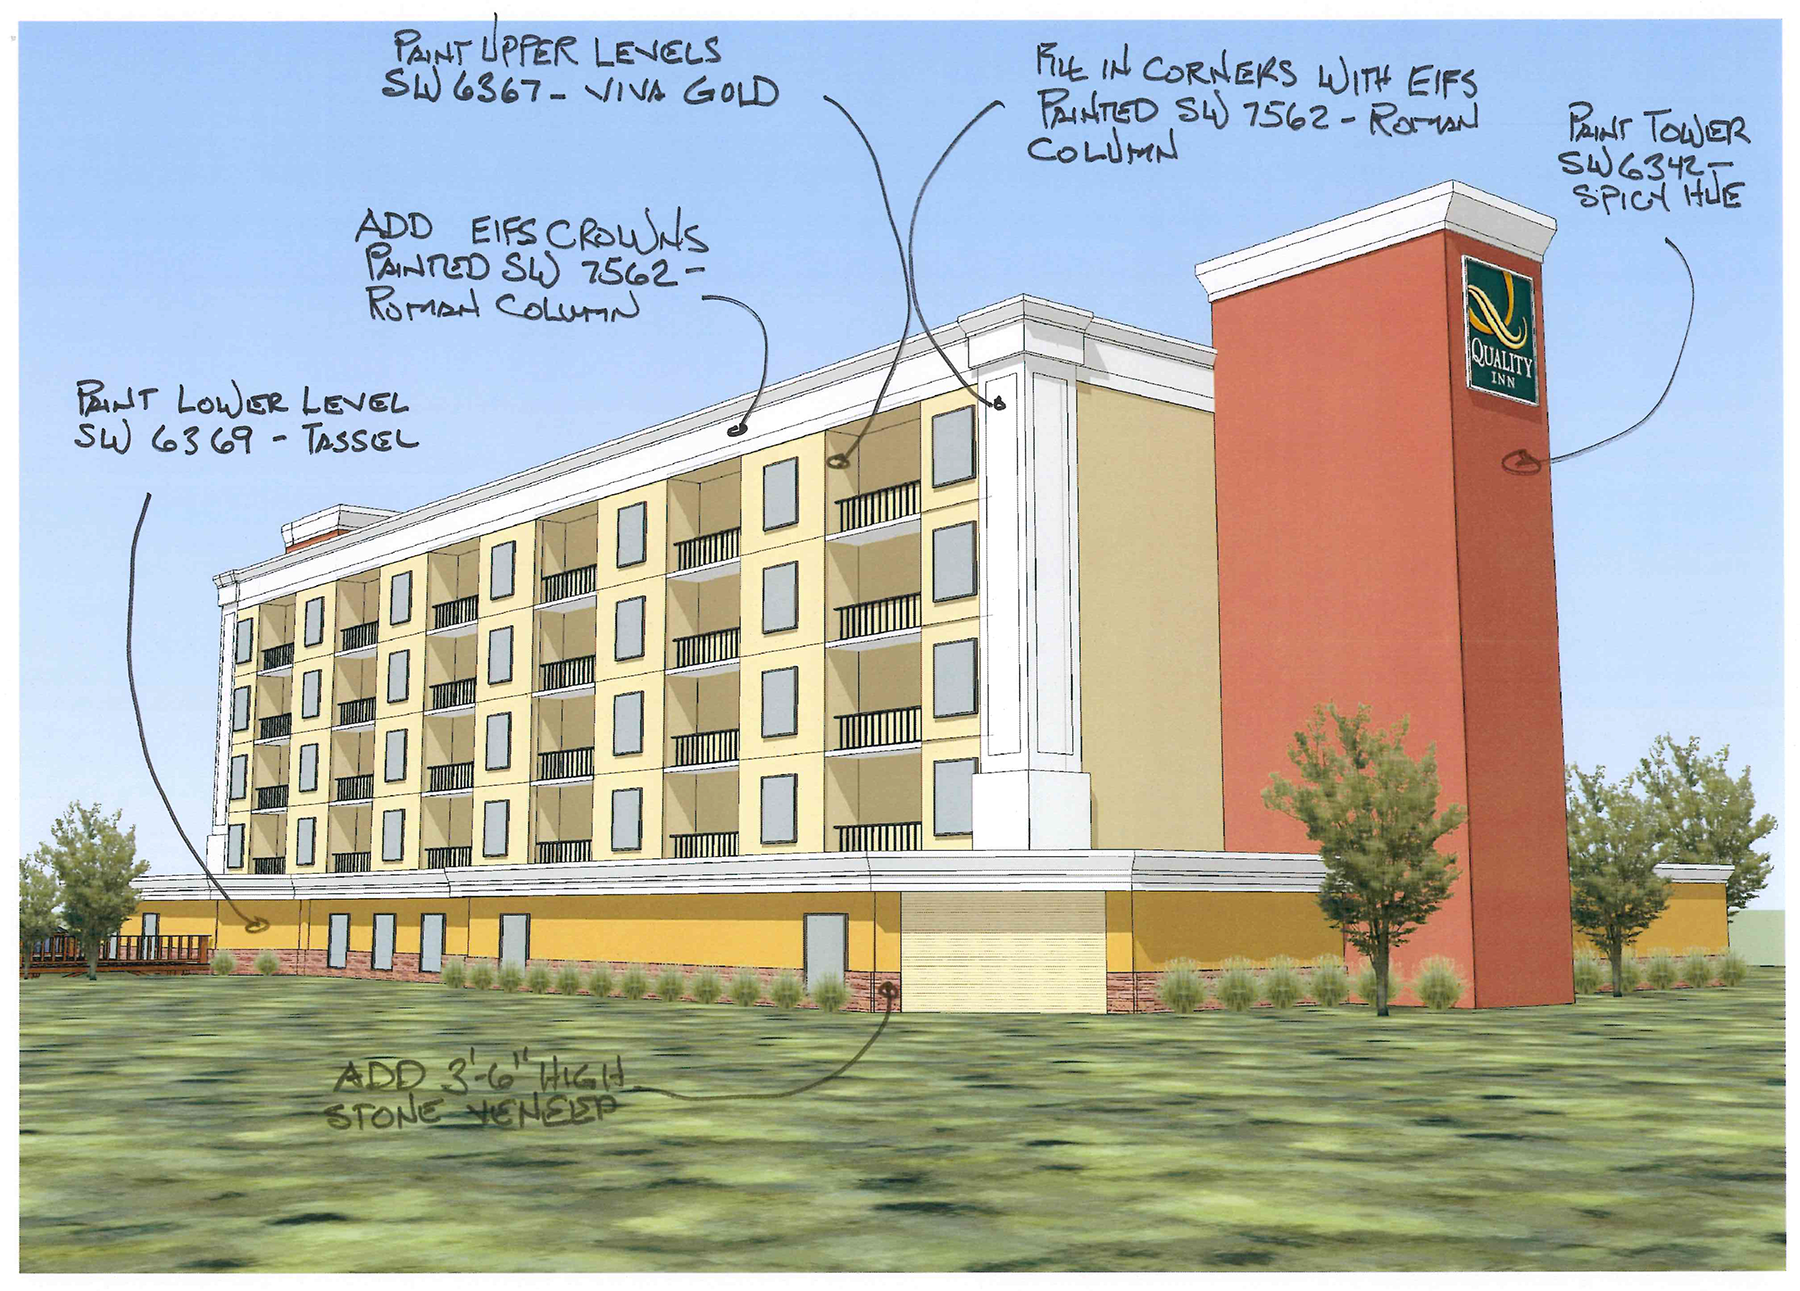 Drawing of the side of a hotel